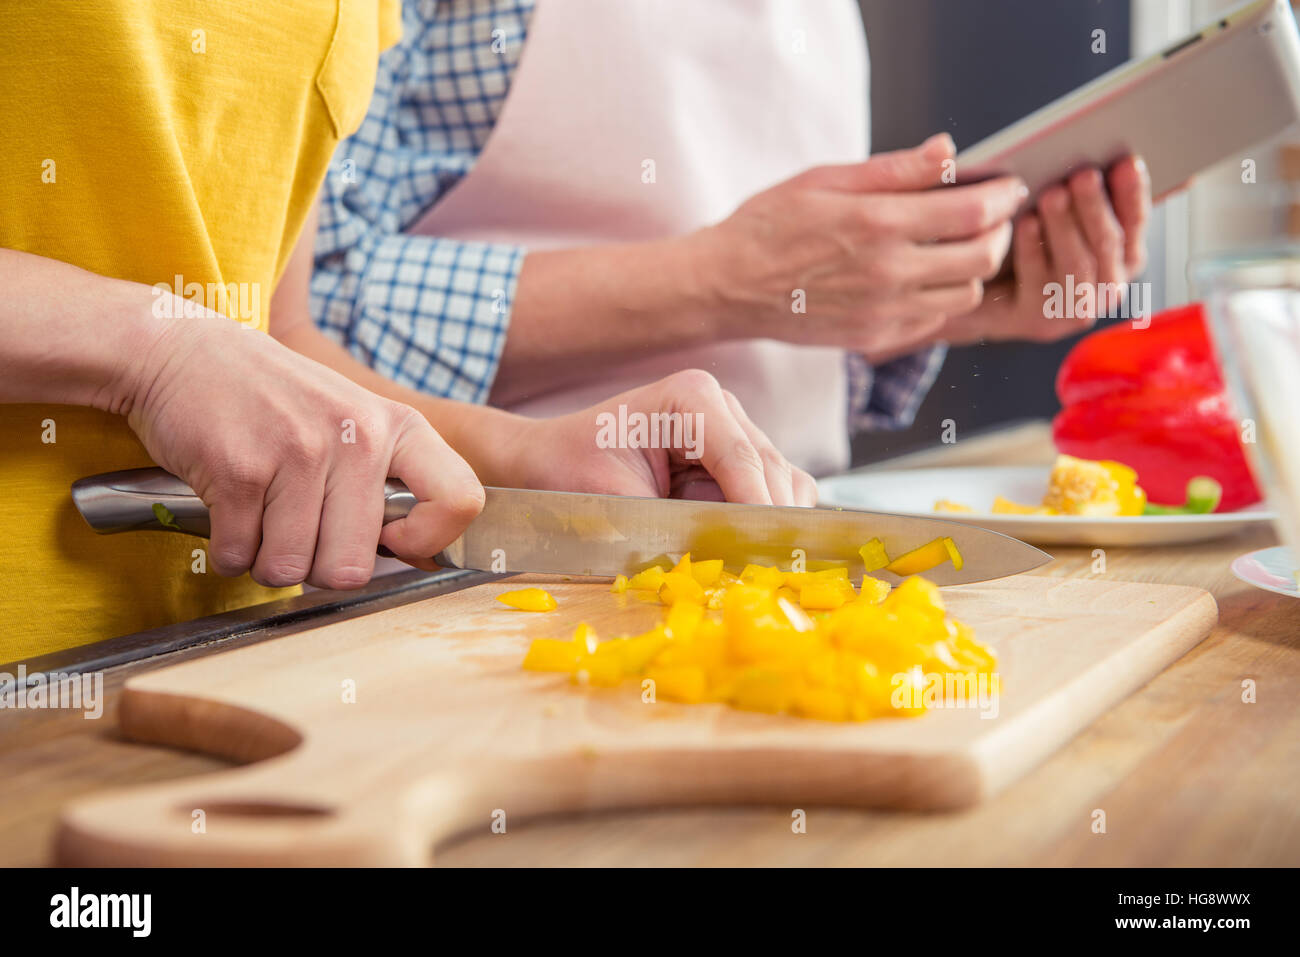 Close-up partial view of woman cutting pepper on cutting board - Stock Image